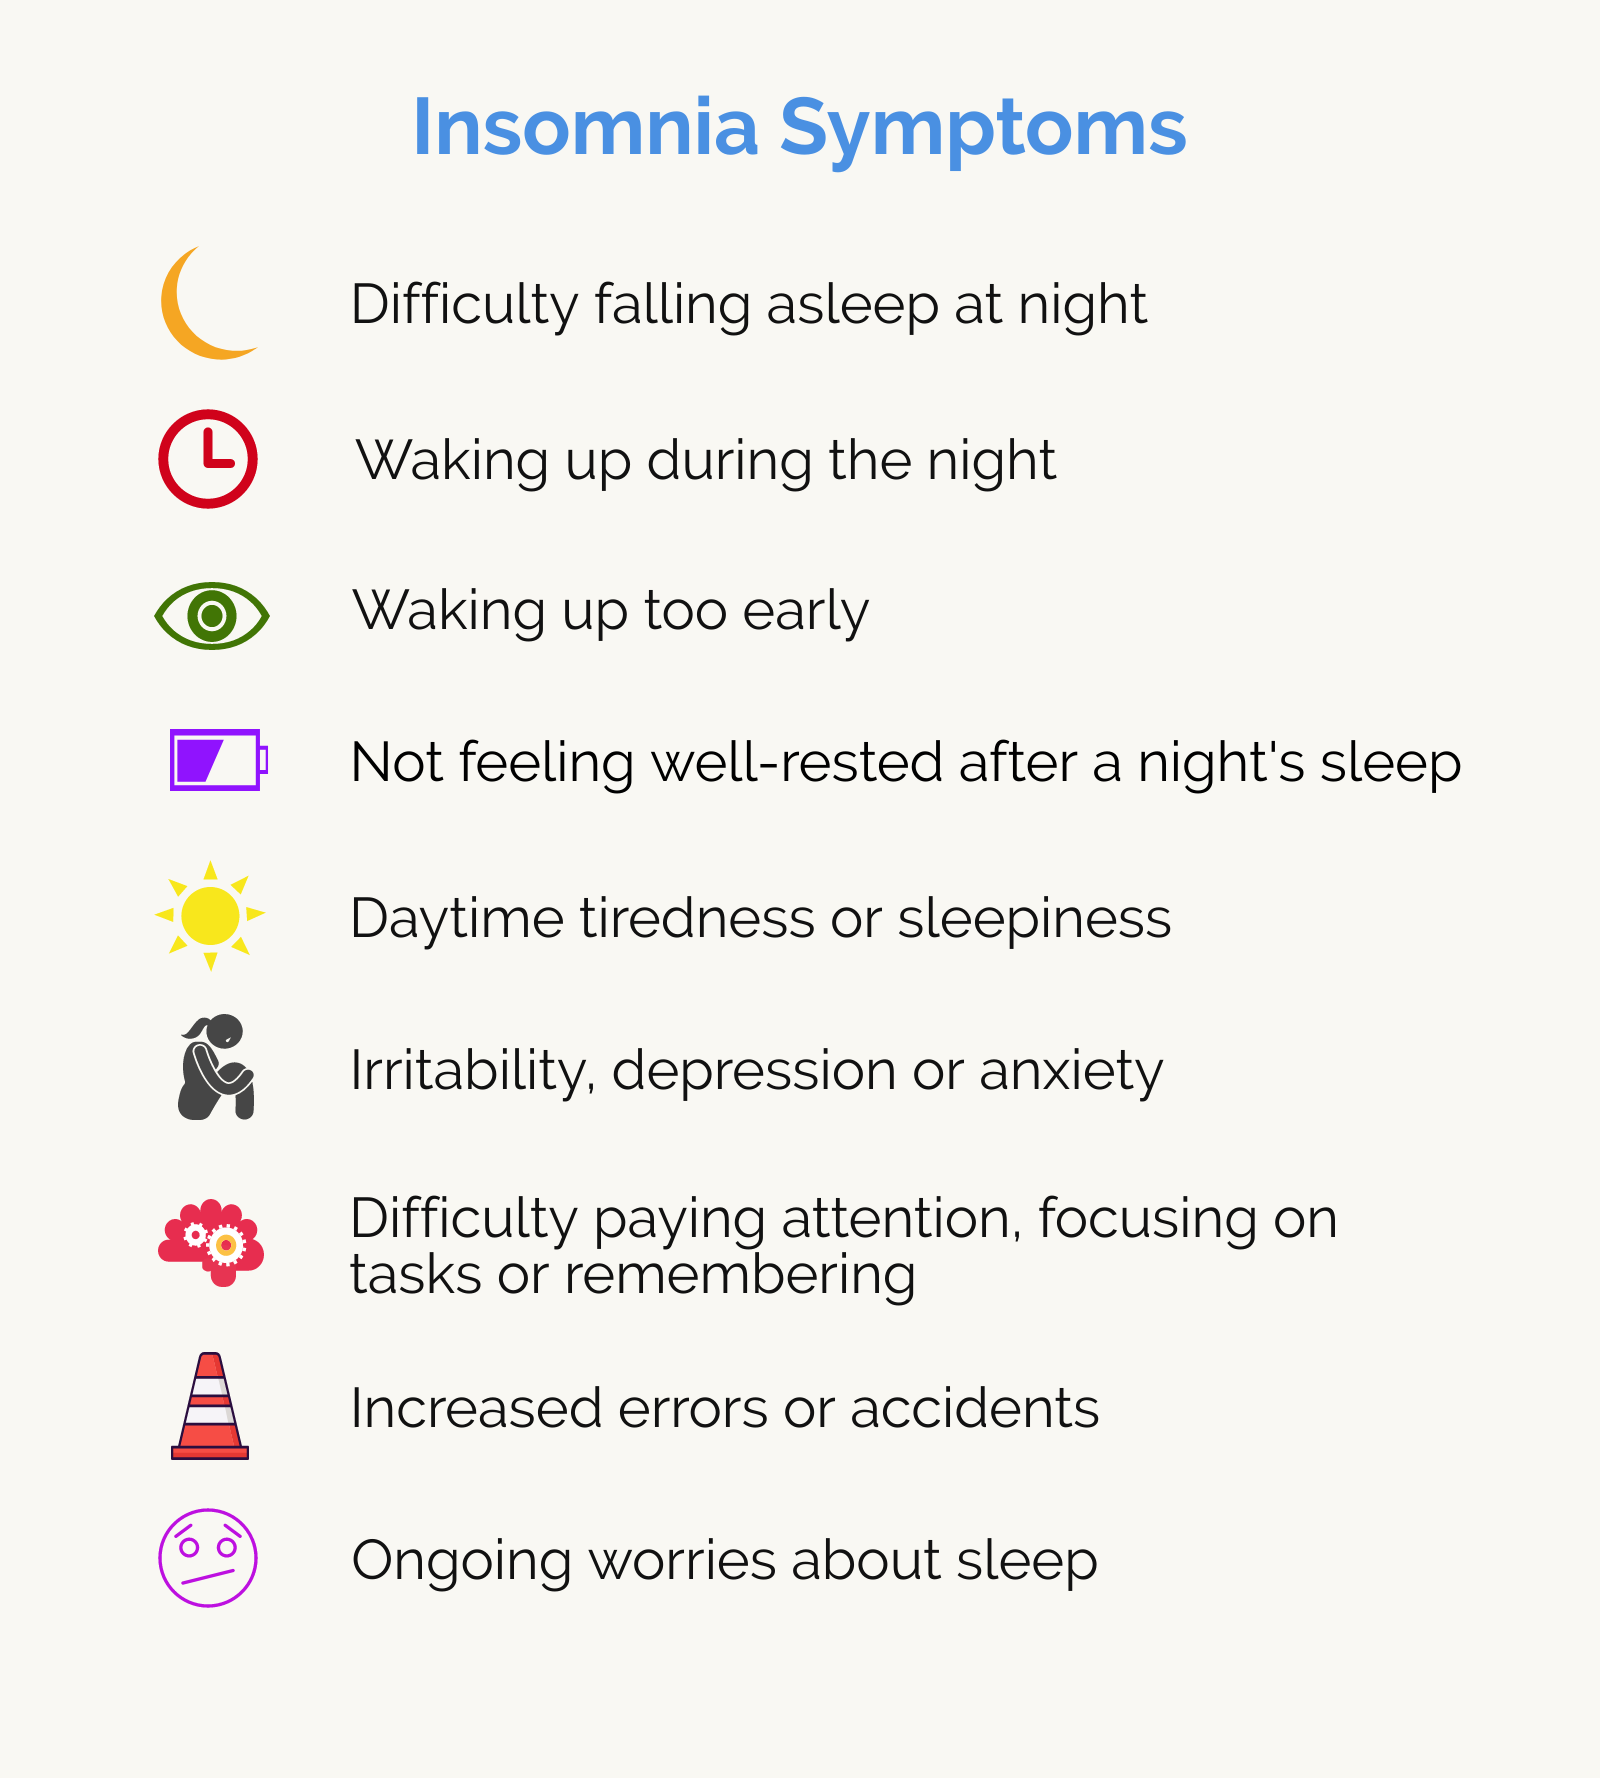 Insomnia SYMPTOMS